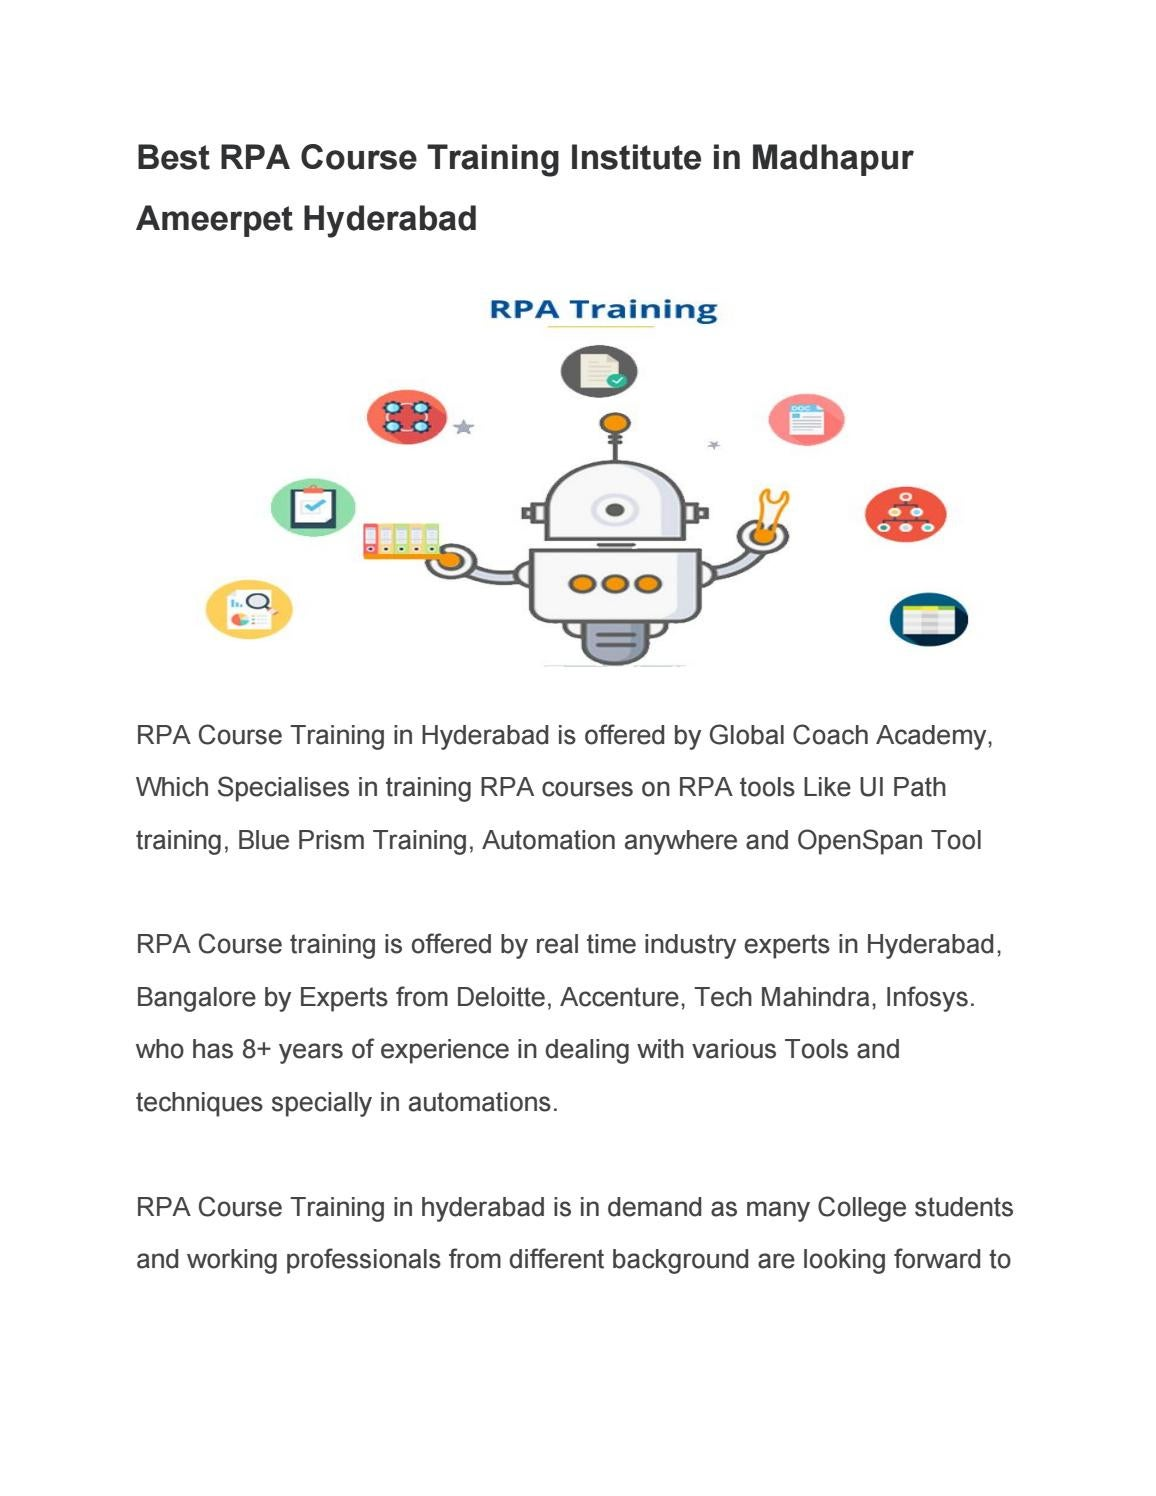 Best RPA Course Training Institute in Madhapur Ameerpet Hyderabad by